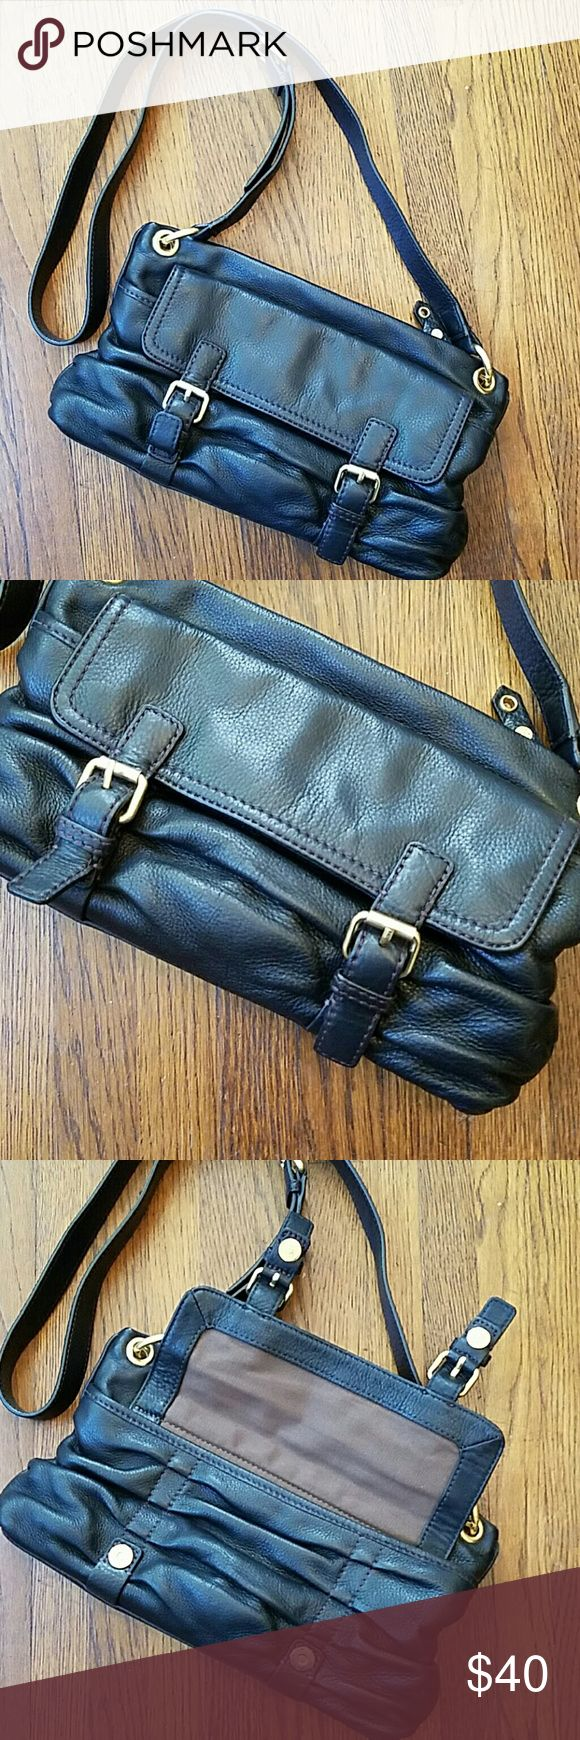 Cole Haan black leather cross body purse Cole Haan black leather cross body purse. Long strap is adjustable. Exterior is excellent, interior is stained as shown. Cole Haan Bags